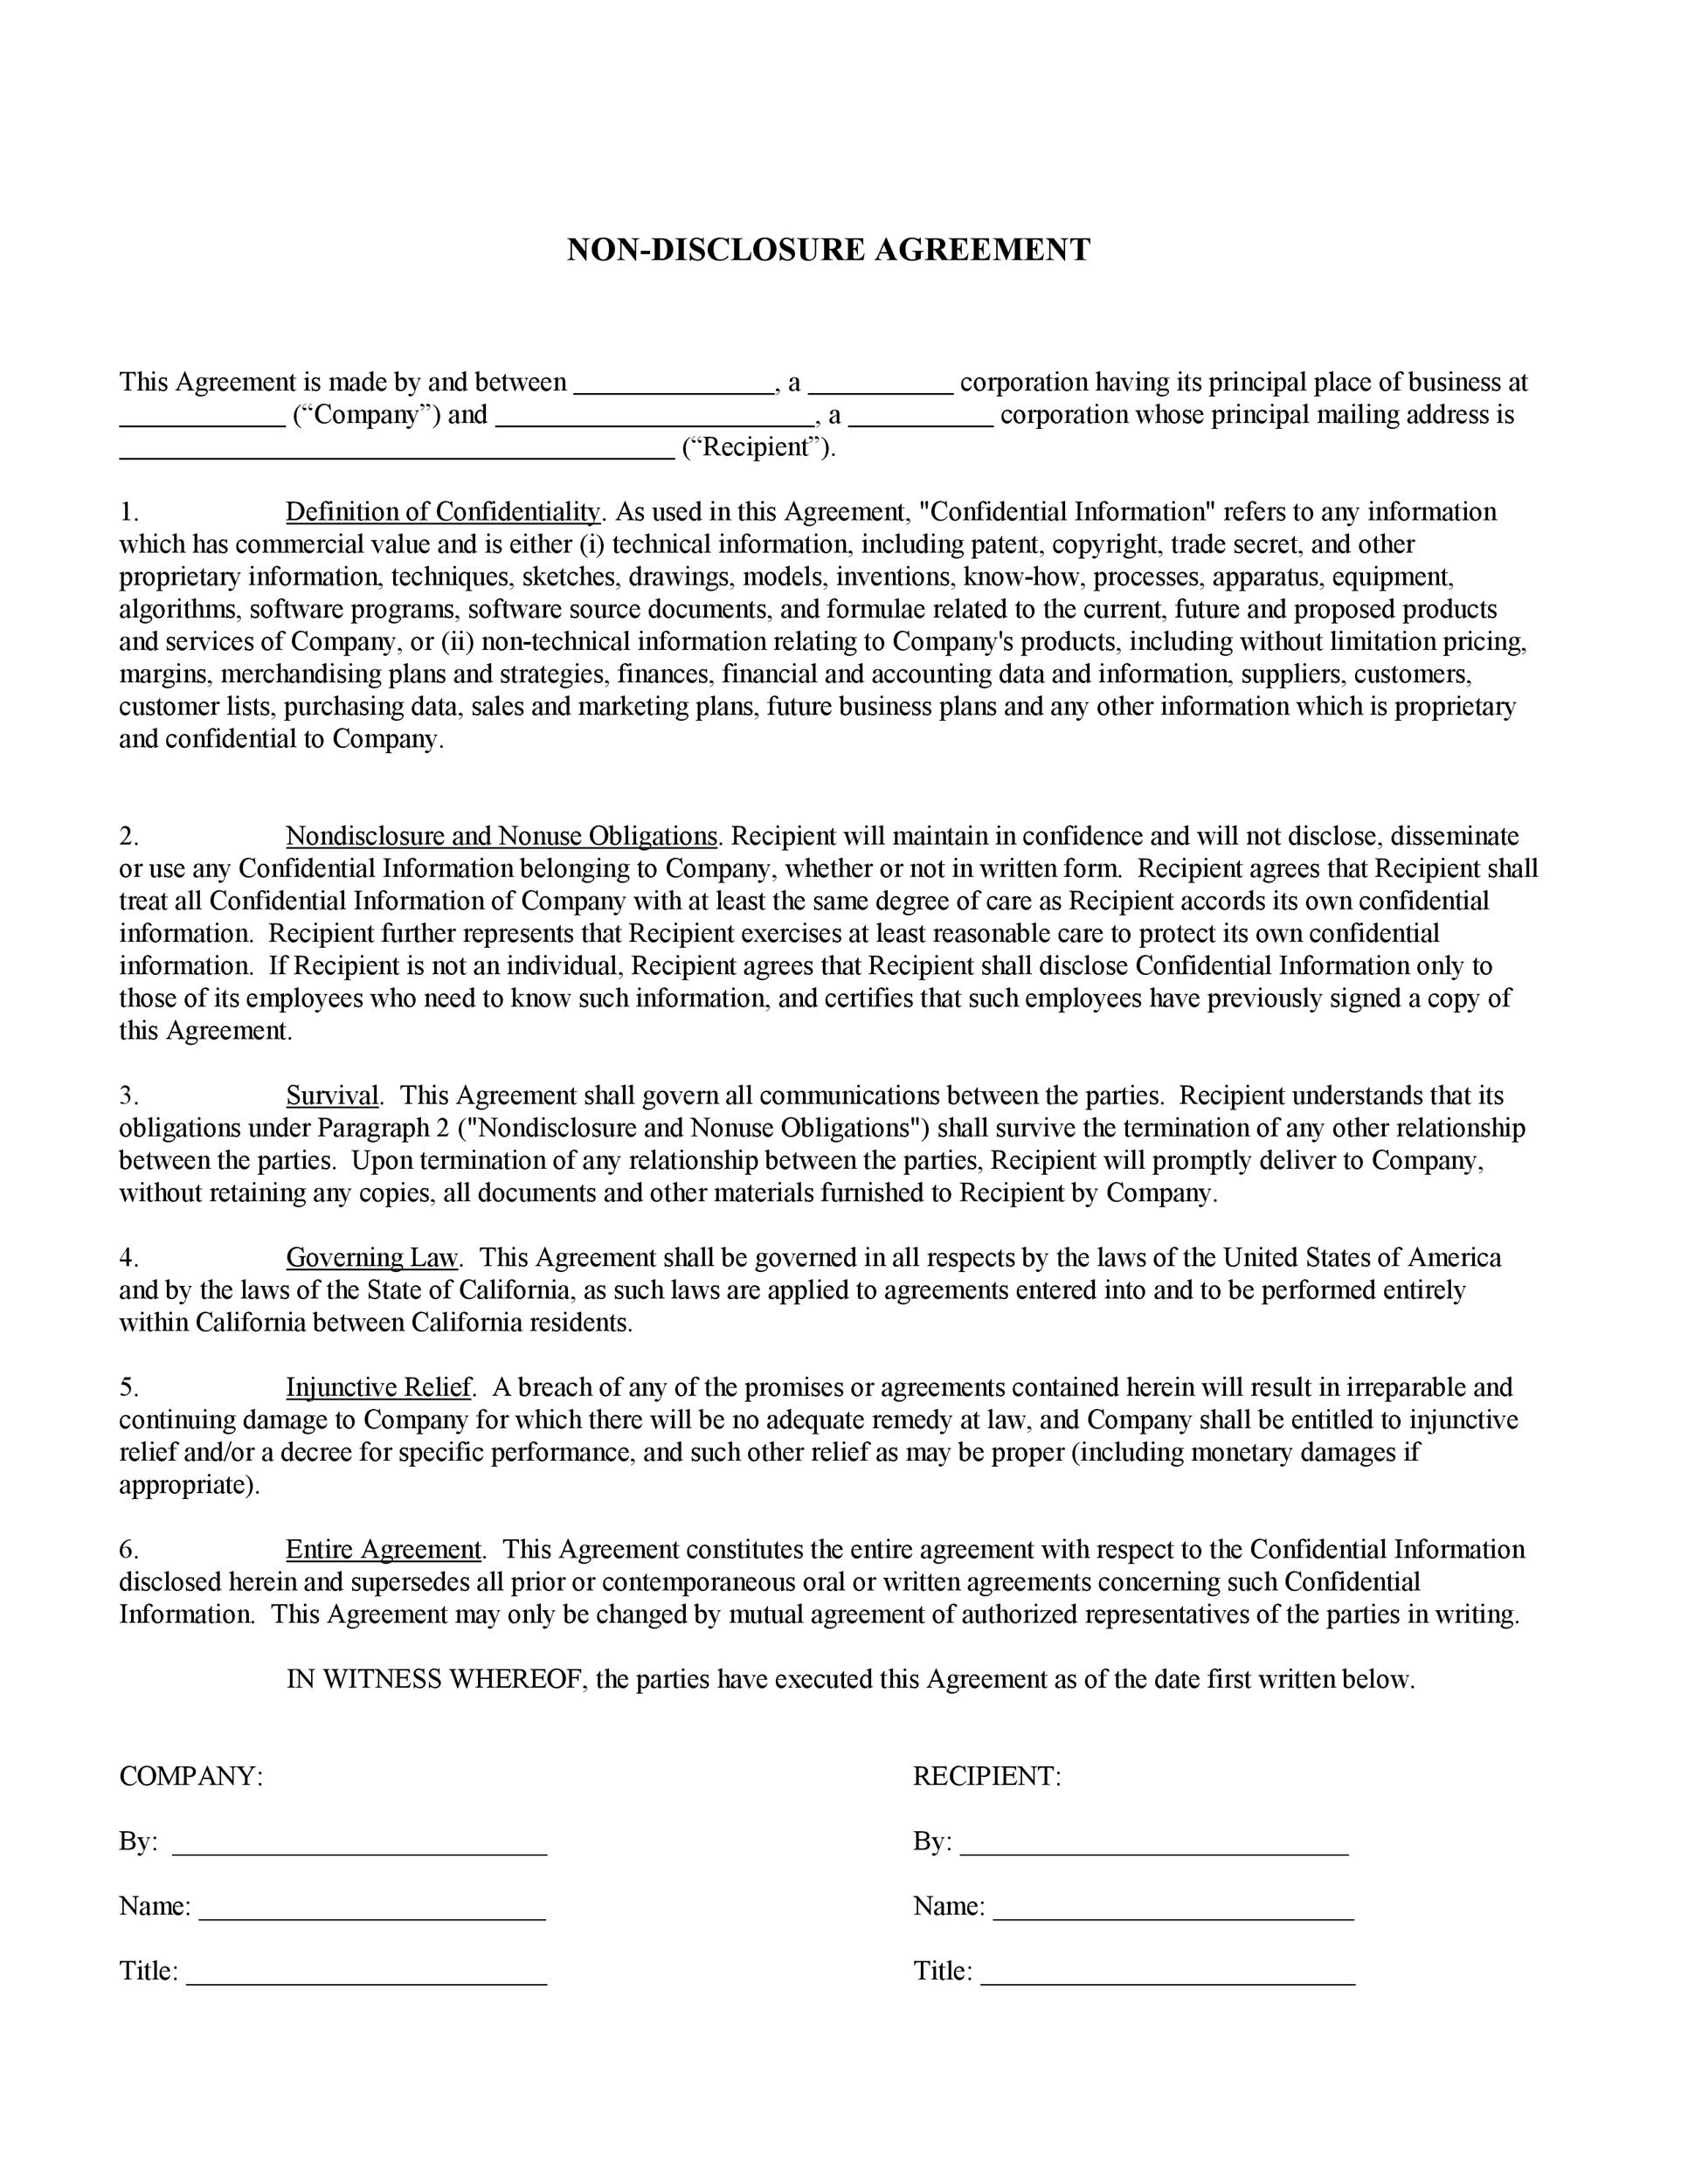 40 non disclosure agreement templates samples forms for Short non disclosure agreement template